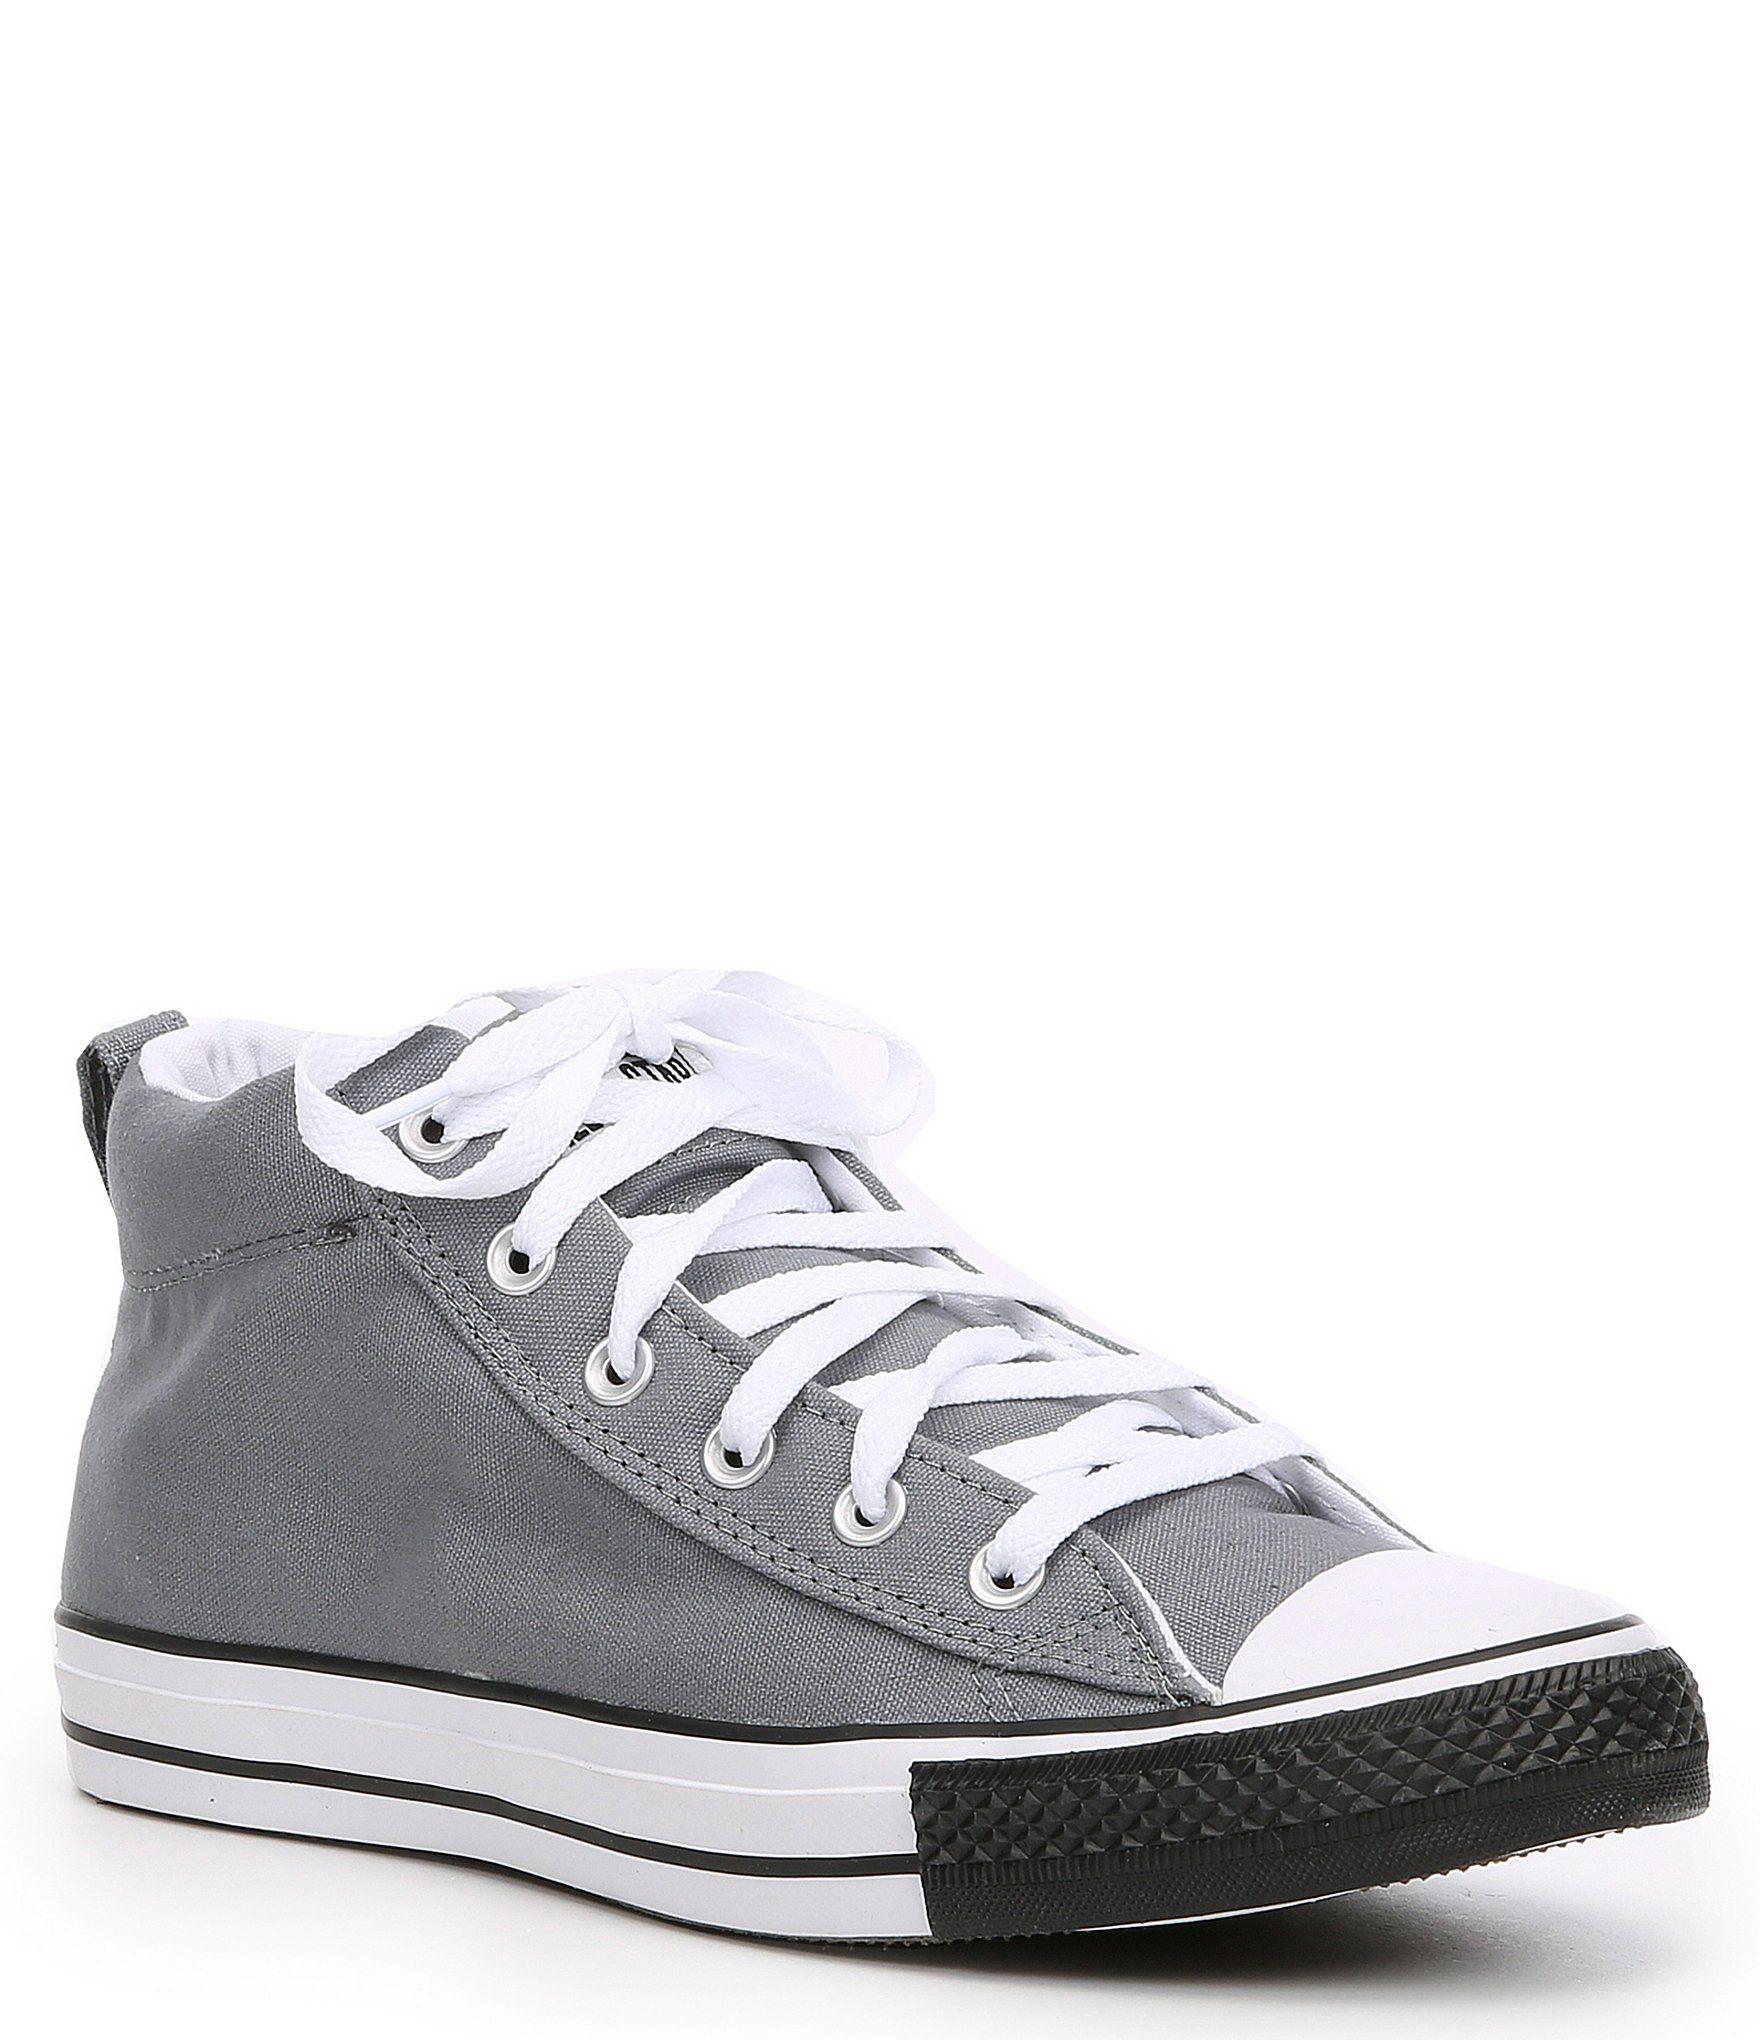 Converse Men's Chuck Taylor All Star Street Mid Sneaker - Cool Grey/White/Black 7.5M #whiteallstars